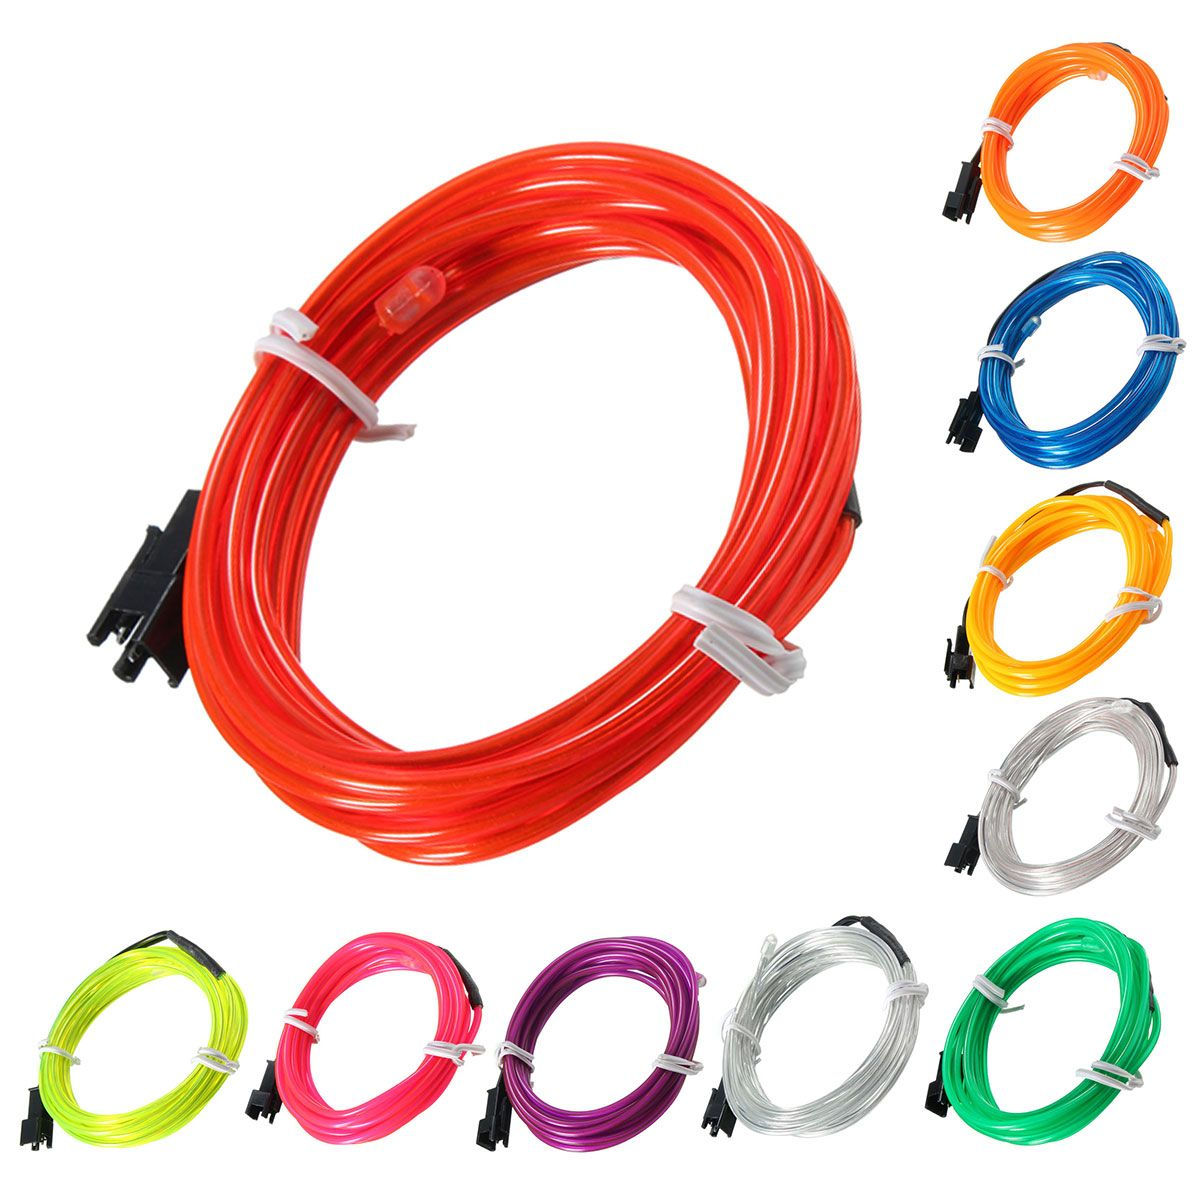 2m El Led Flexible Soft Tube Wire Neon Glow Car Rope Strip Light Xmas Decor Dc 12v Strip Lighting Neon Glow Neon